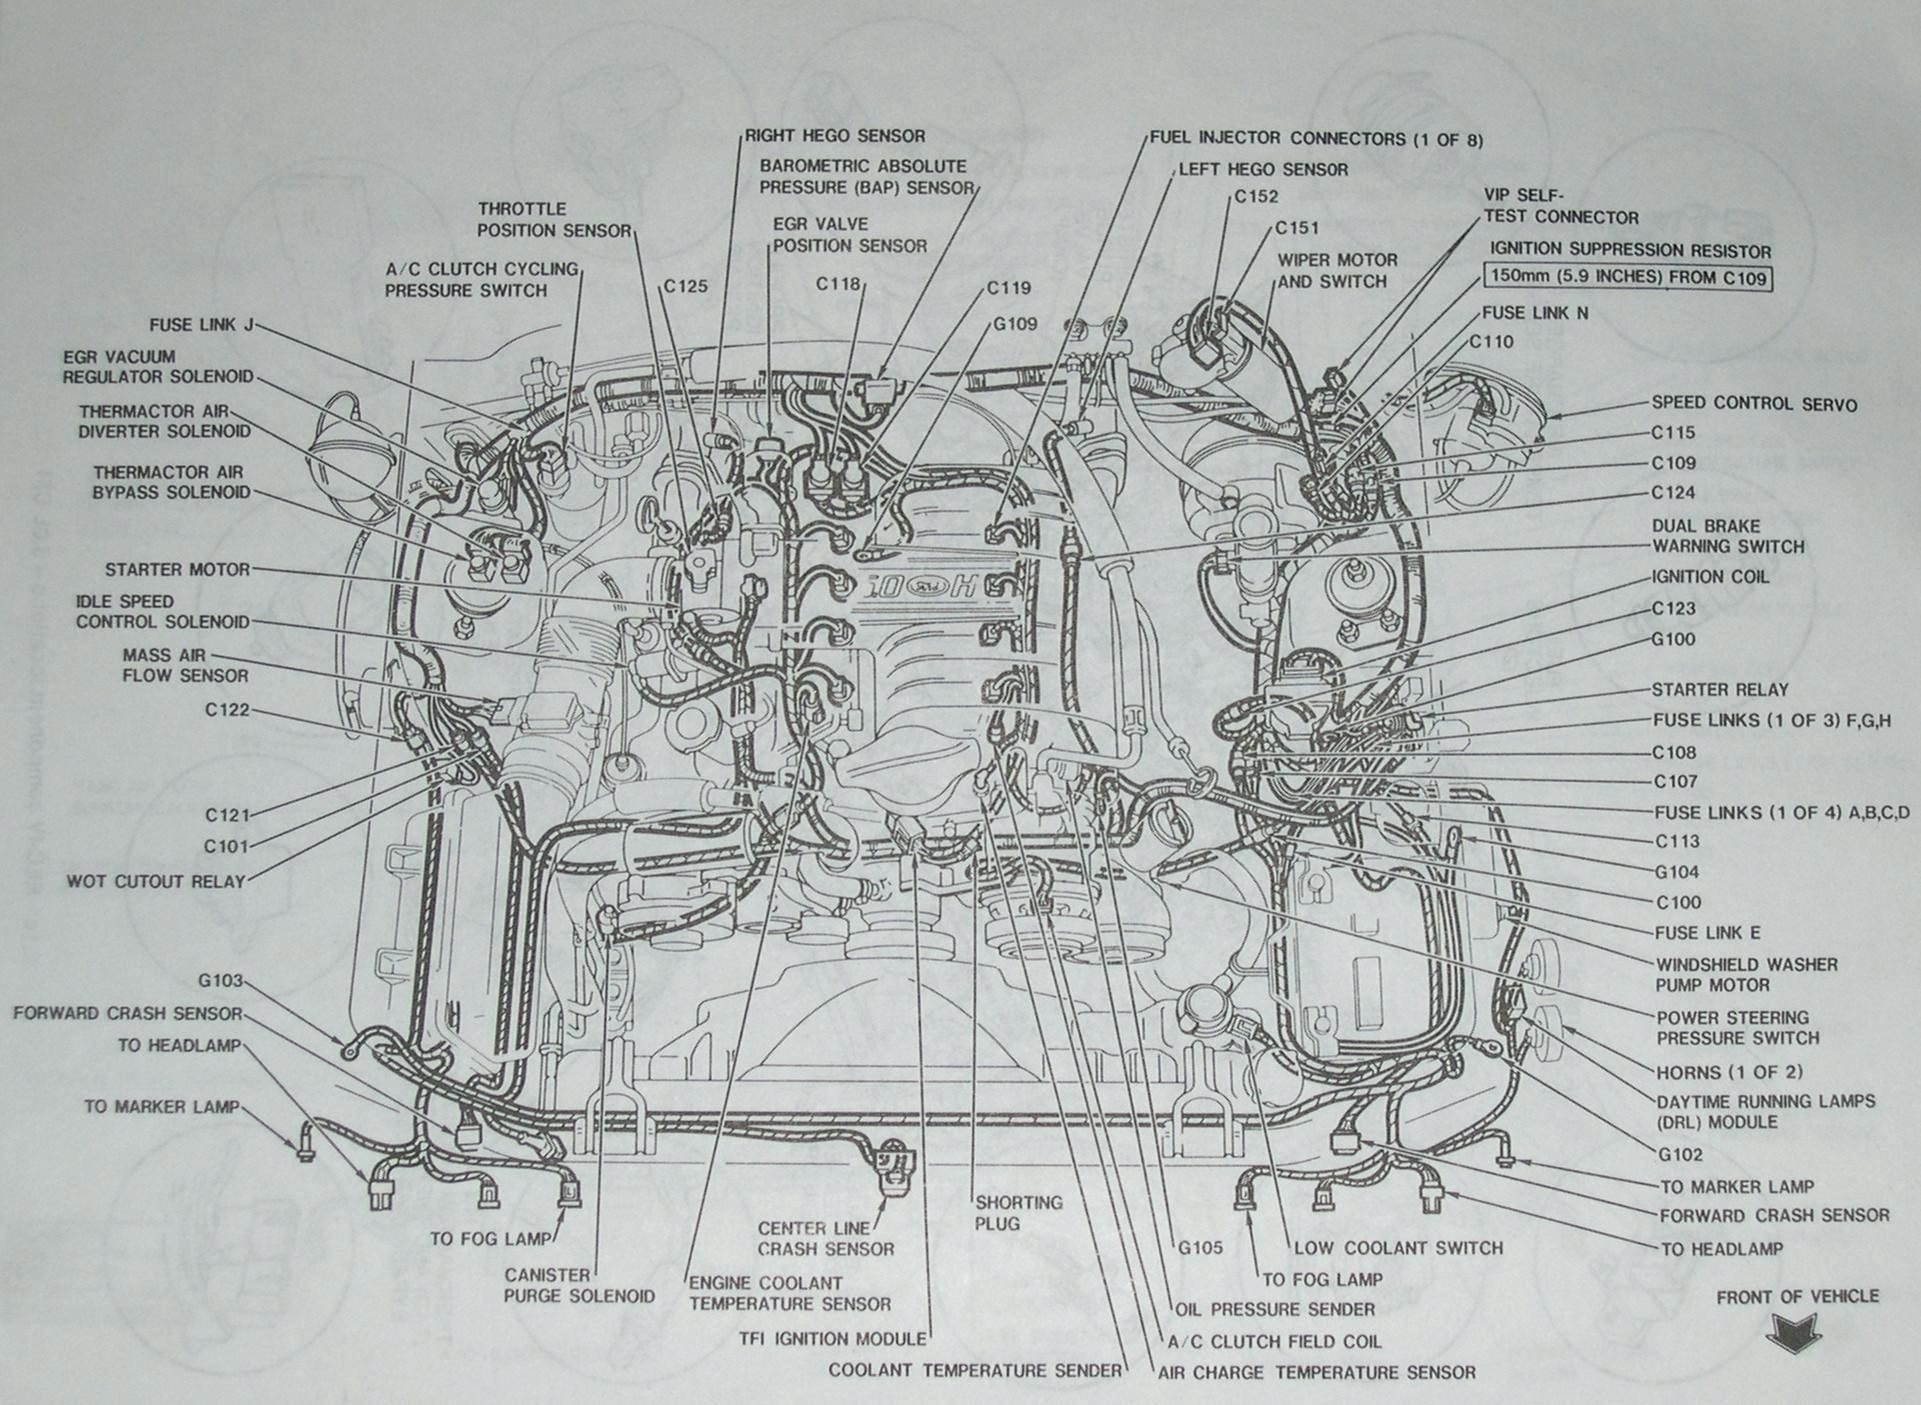 hight resolution of 1992 mustang wiring harness wiring diagram post 1992 mustang wiring harness